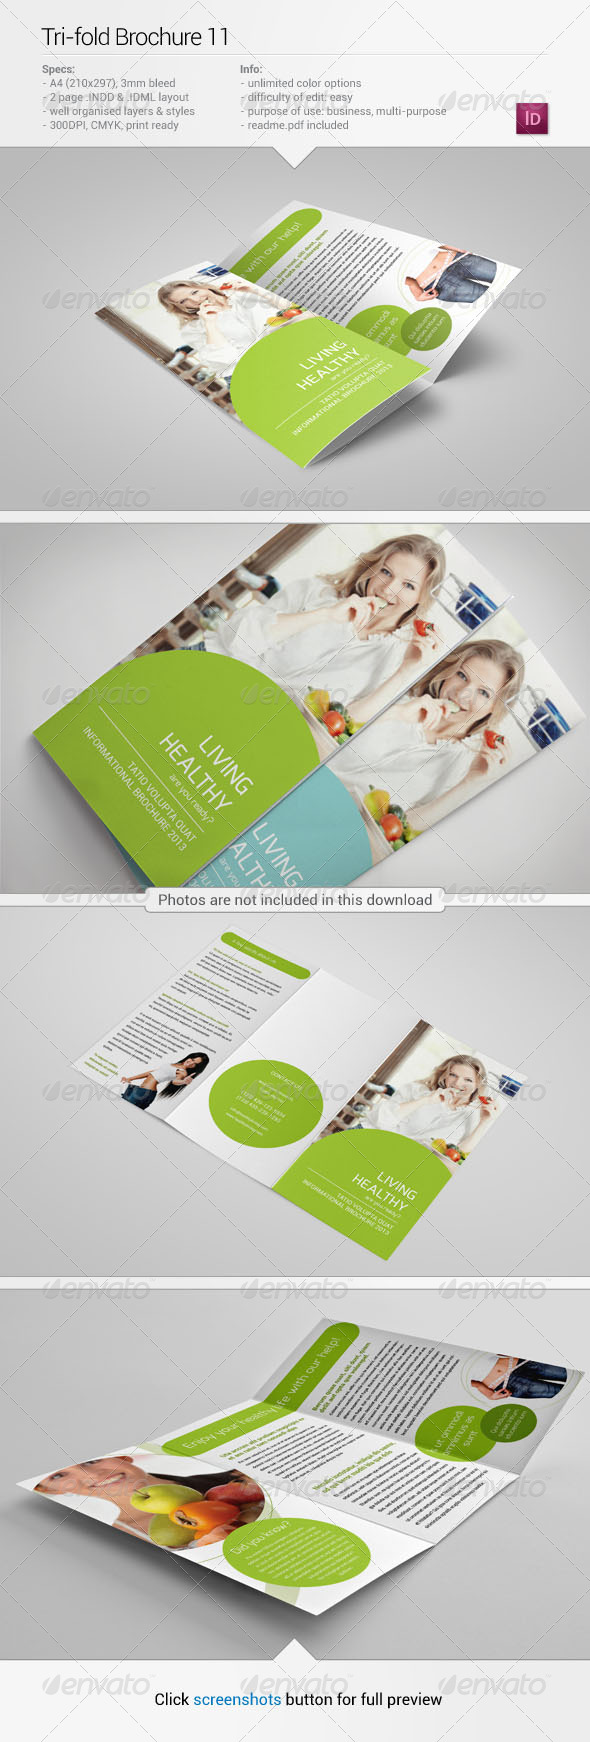 GraphicRiver Tri-Fold Brochure 11 5482176